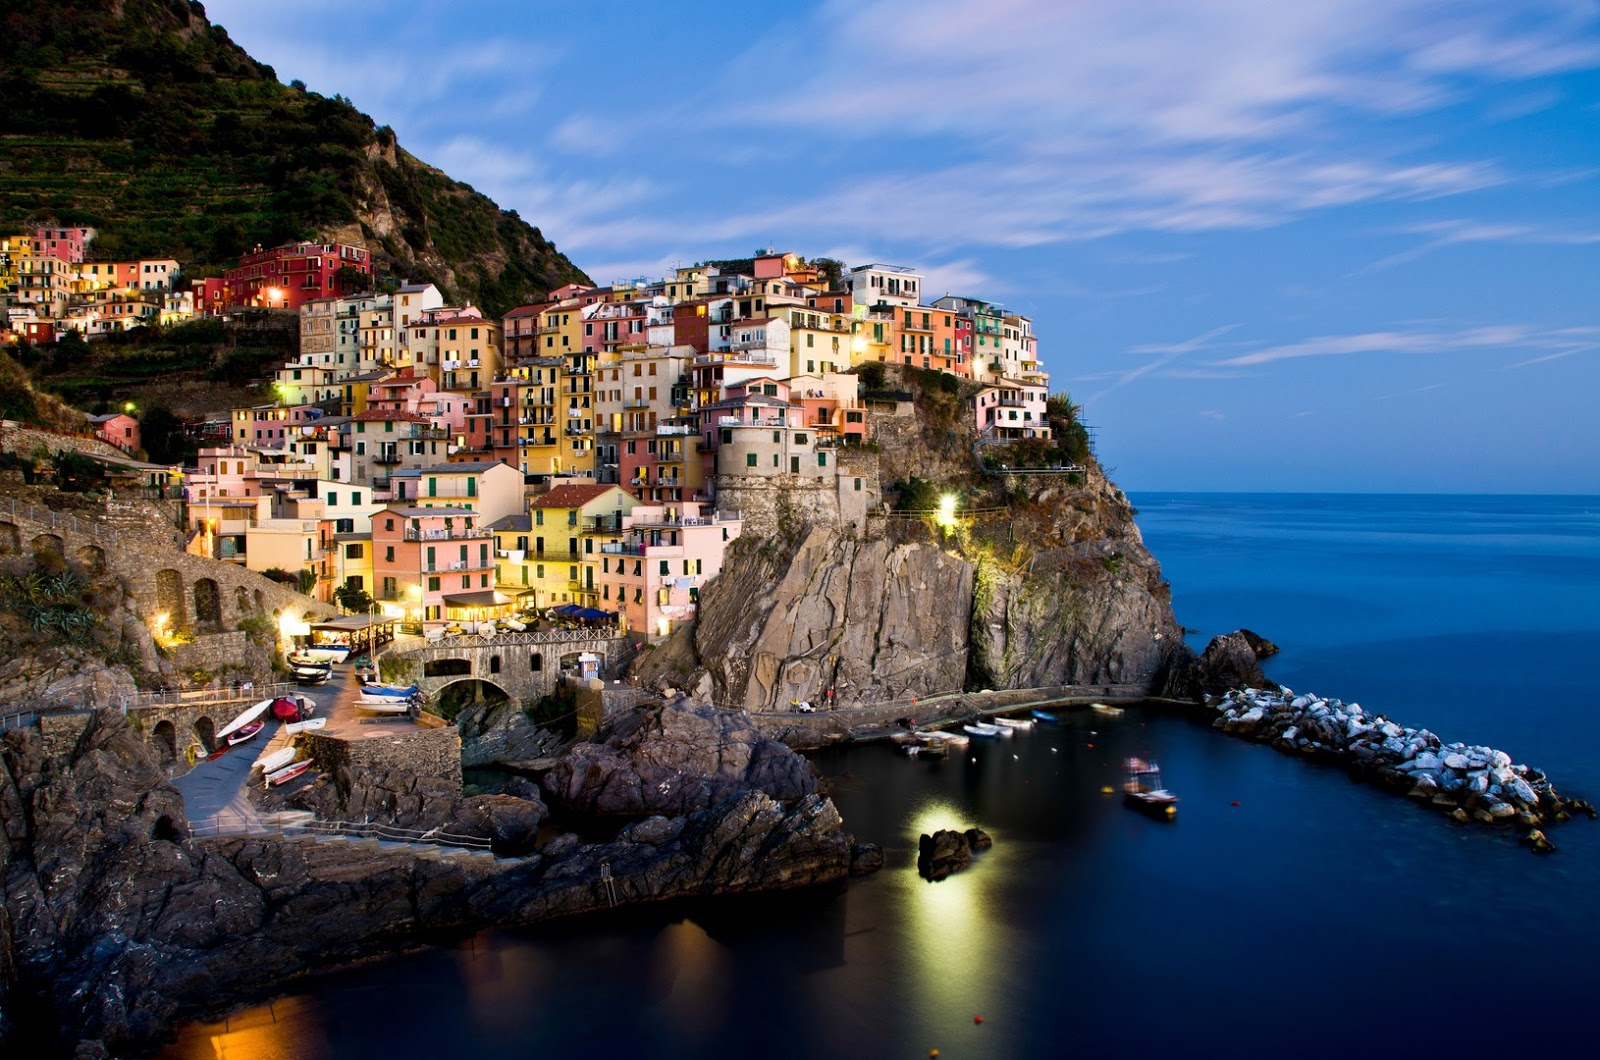 Manarola Beautiful Place